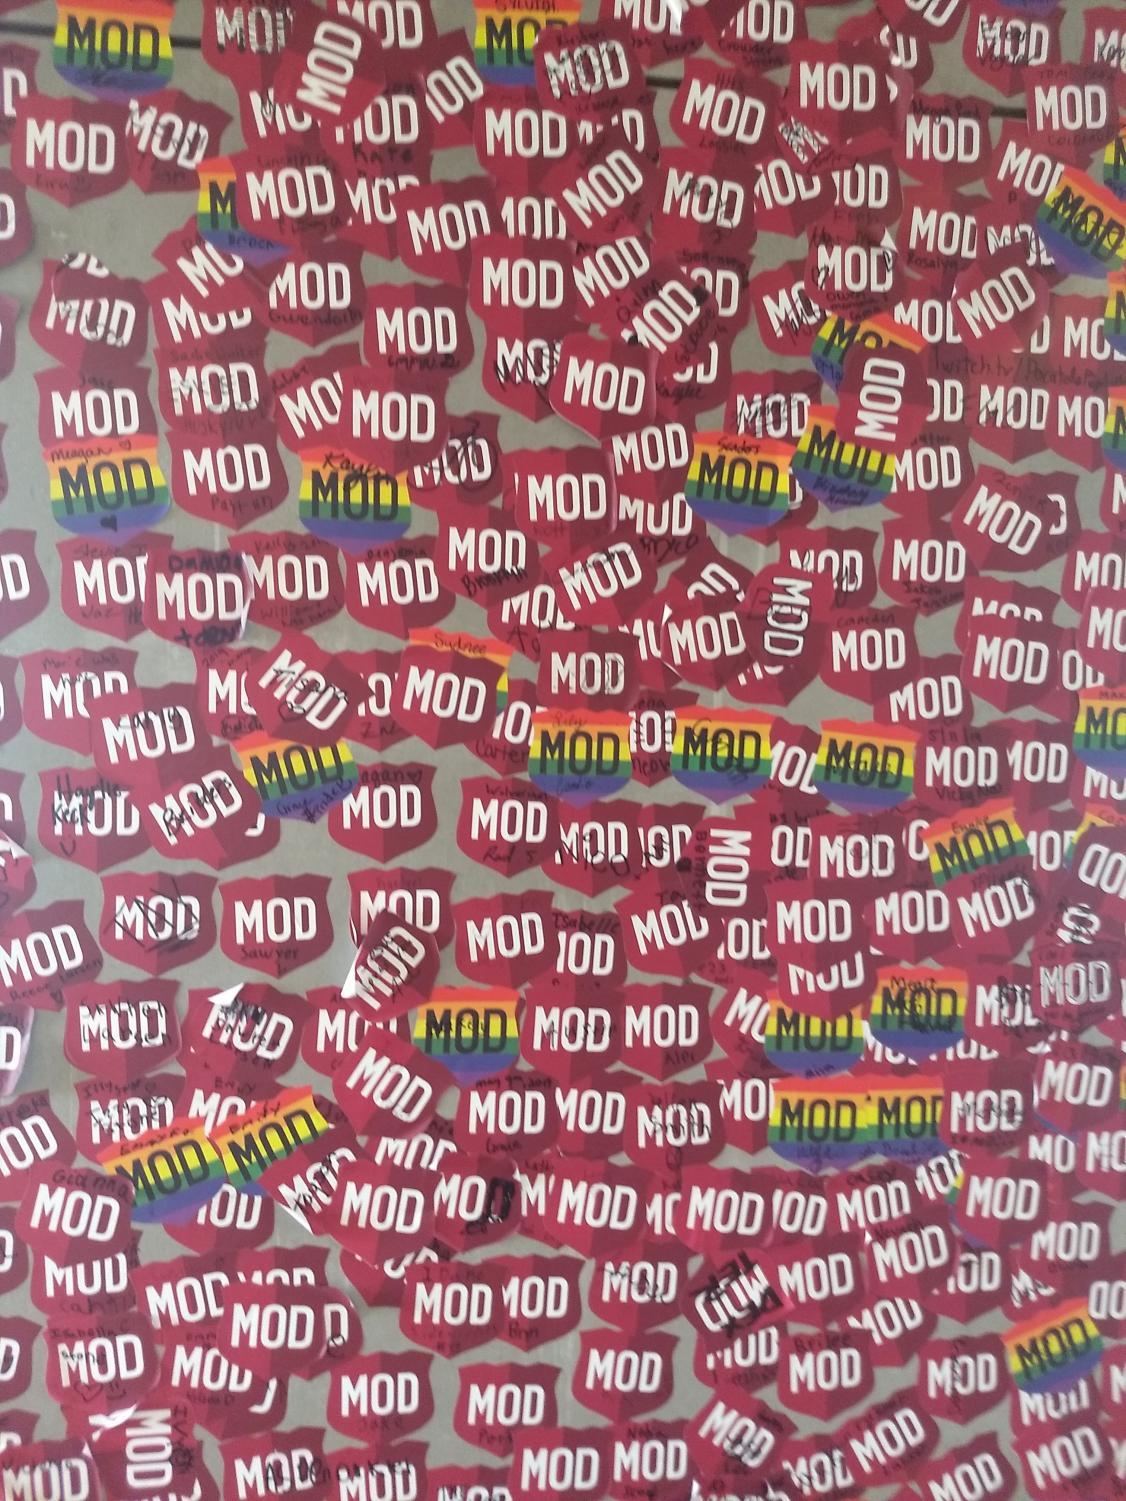 The stickers of previous customers on the wall of Mod Pizza. Picture by Cadence Andrus